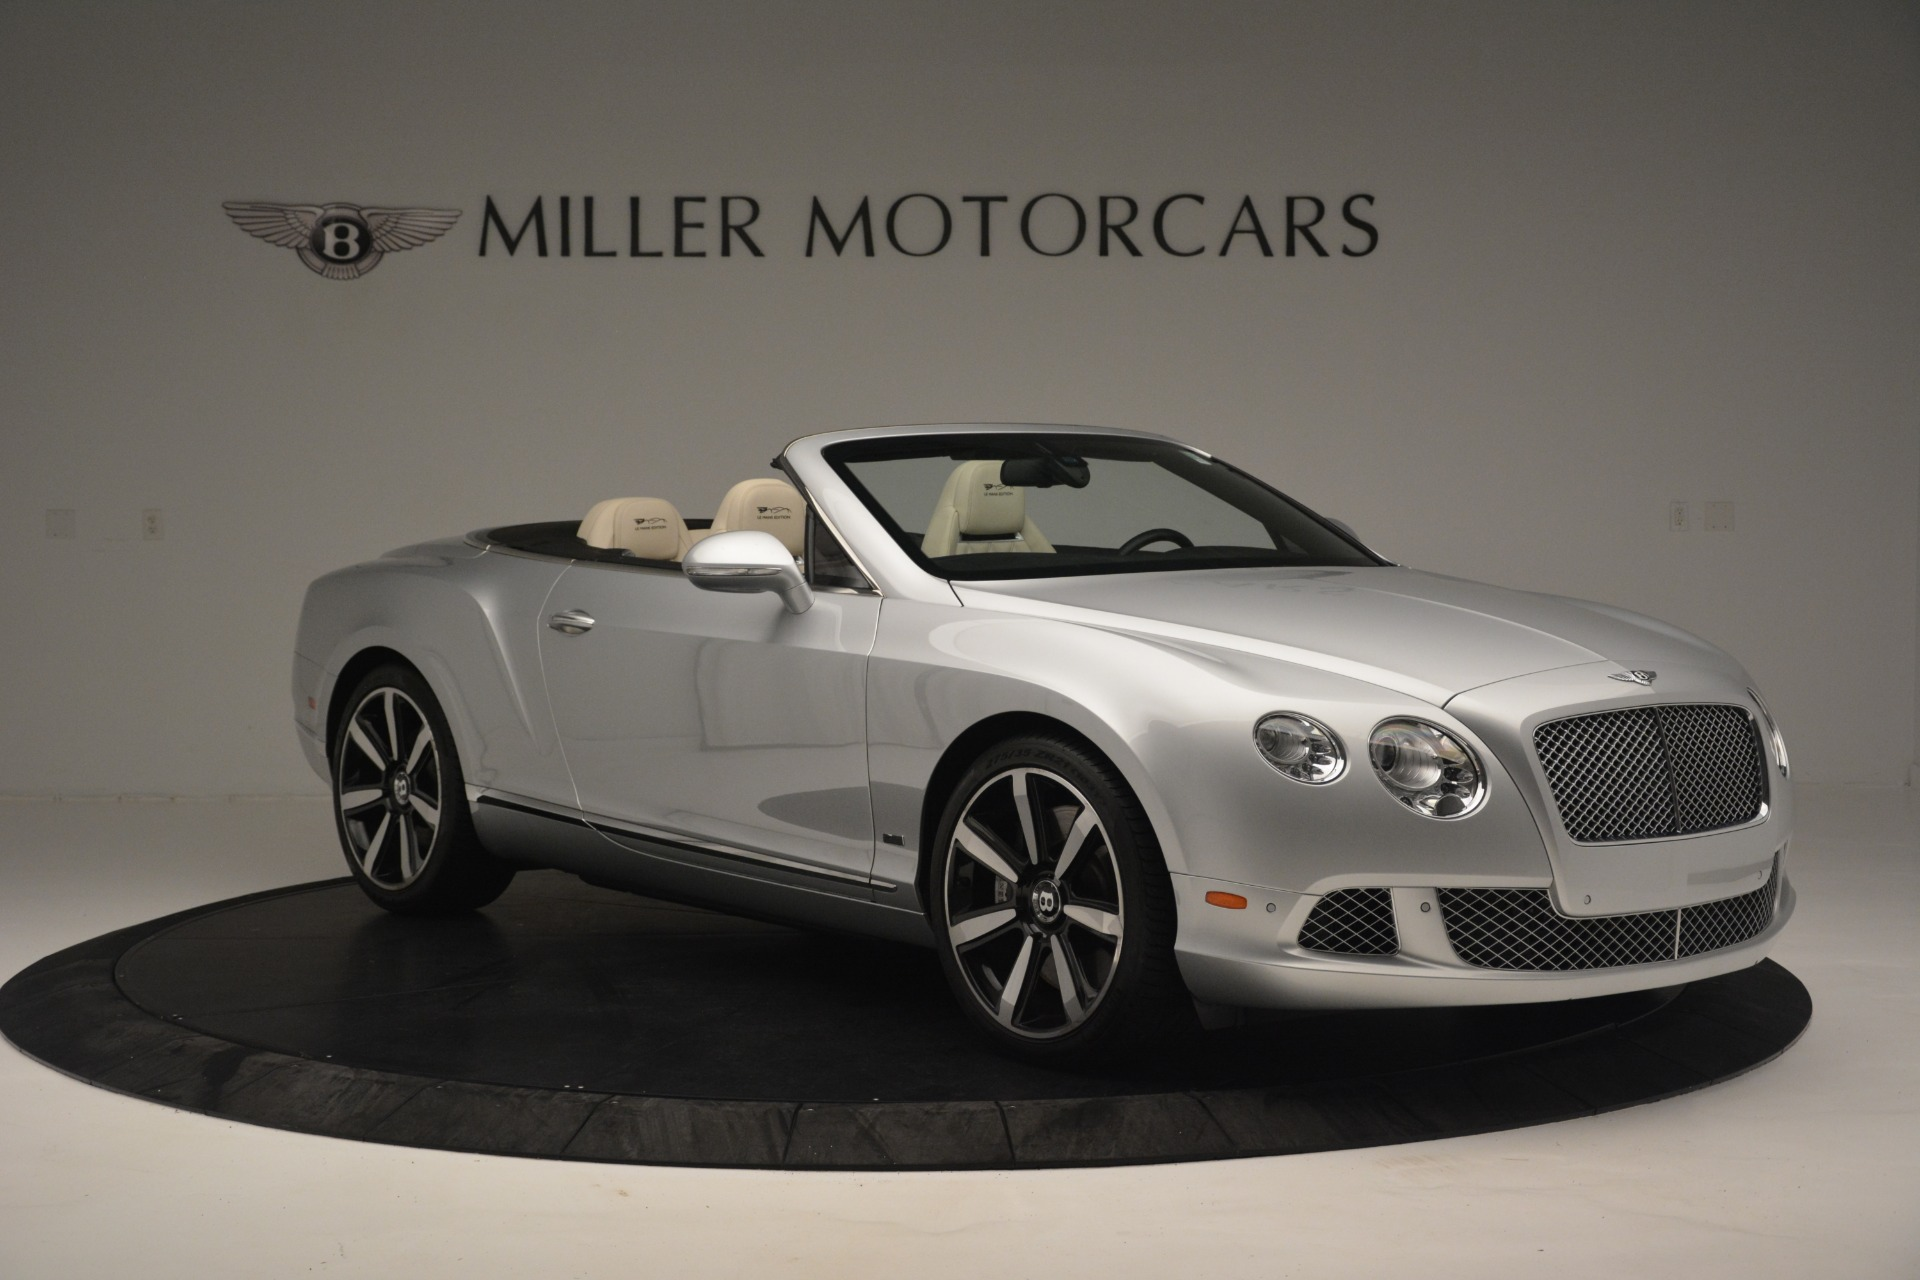 Used 2013 Bentley Continental GT W12 Le Mans Edition For Sale In Westport, CT 2519_p8